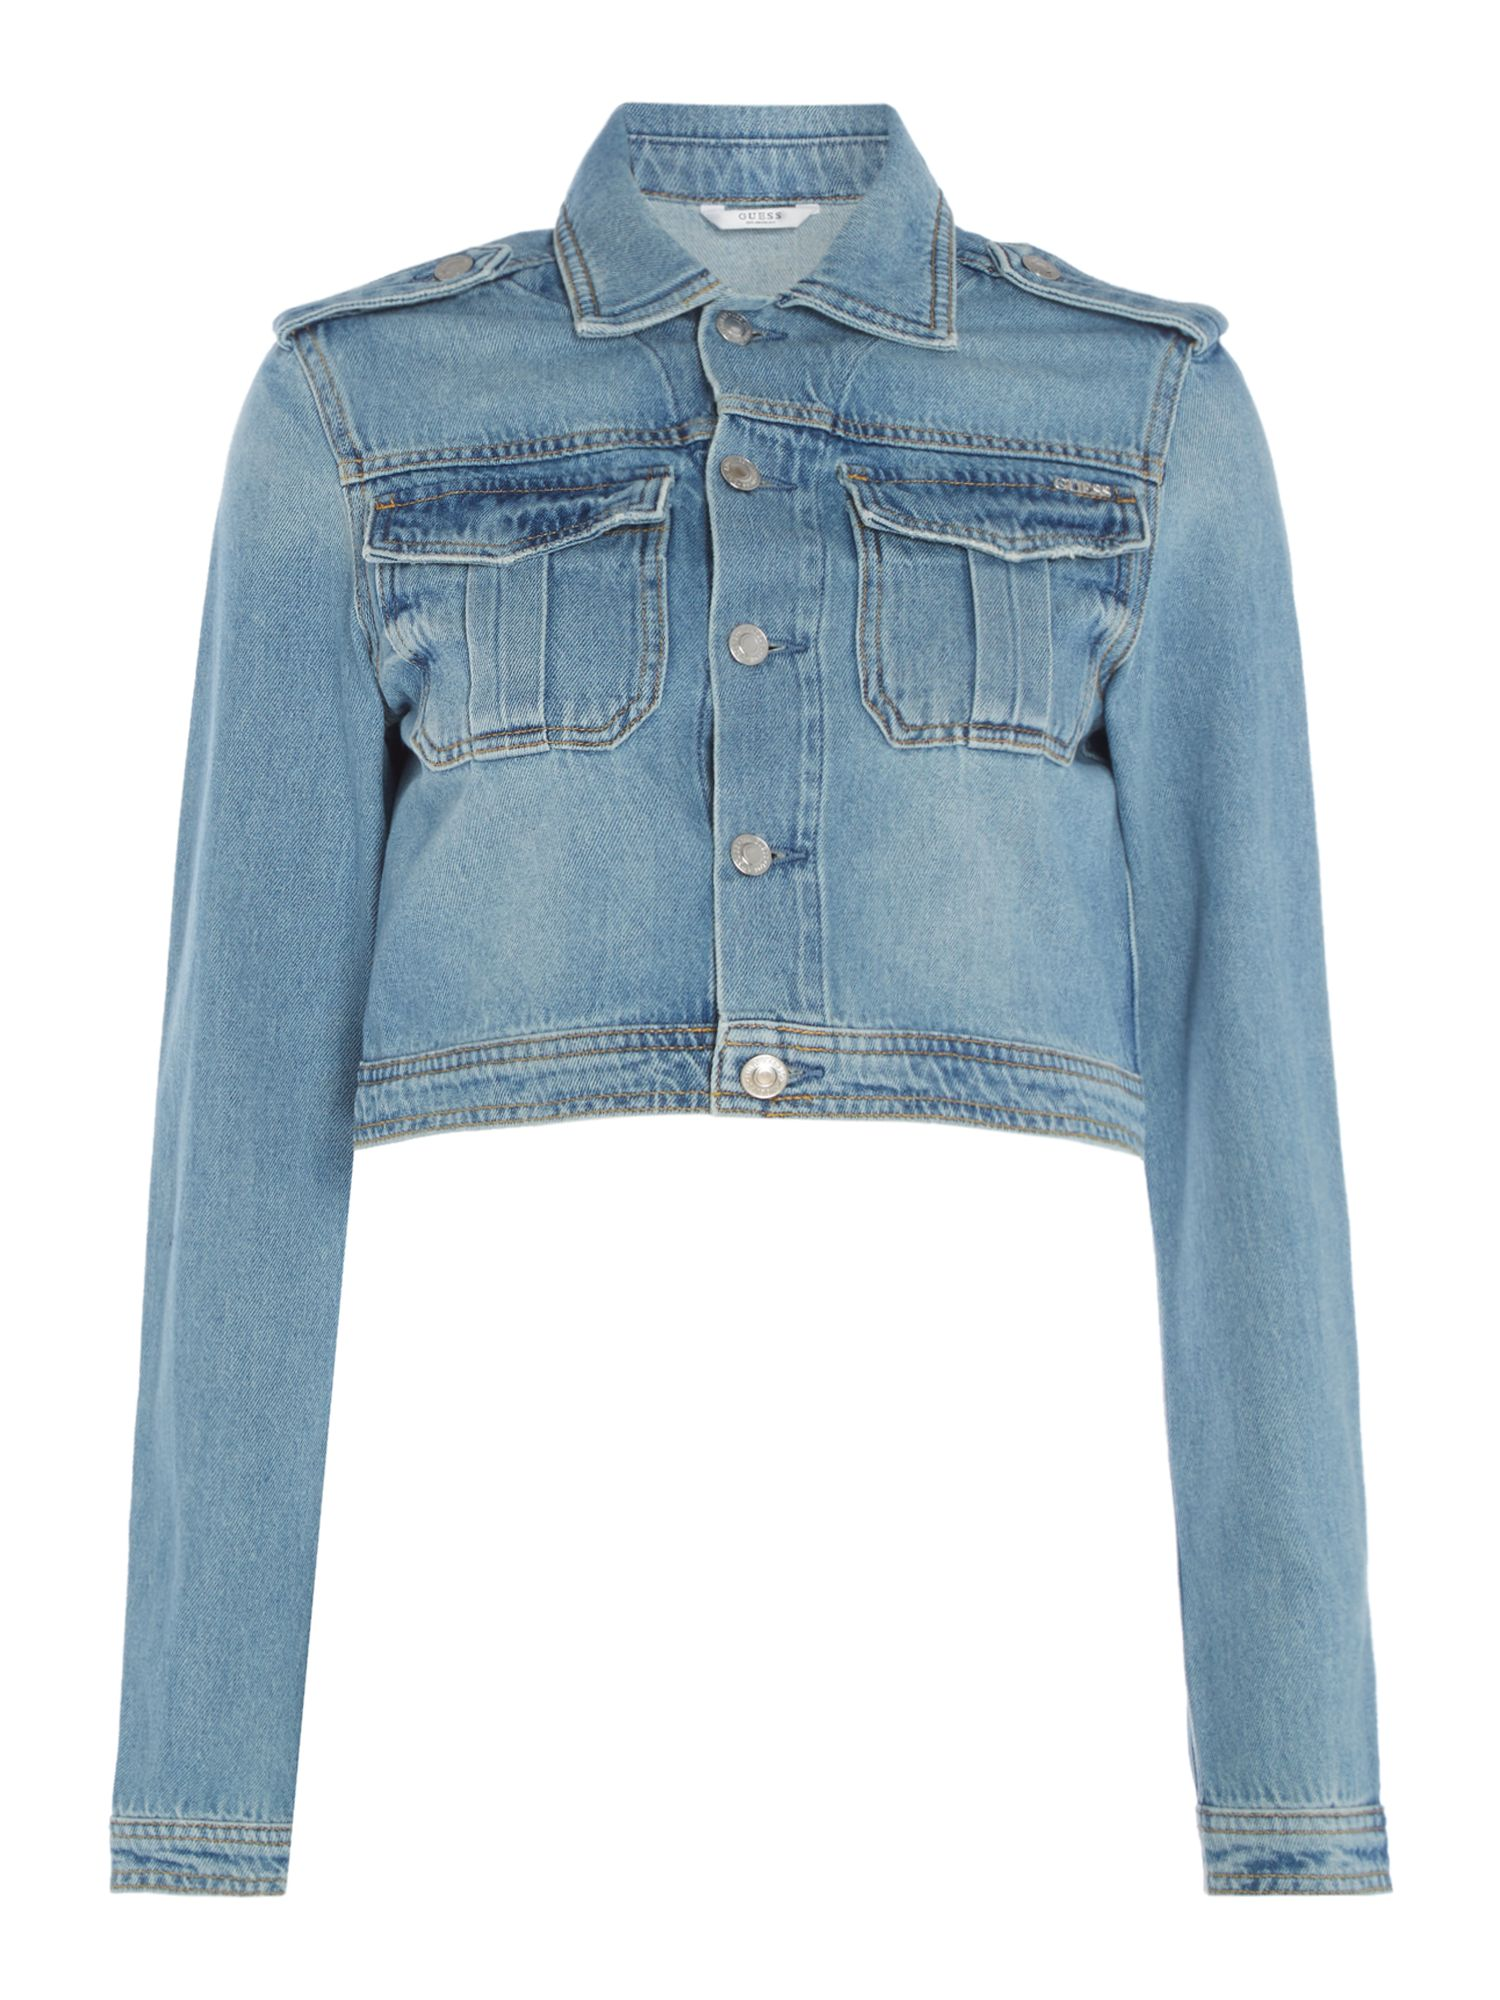 Guess Cropped Utility Denim Jacket, Denim Light Wash